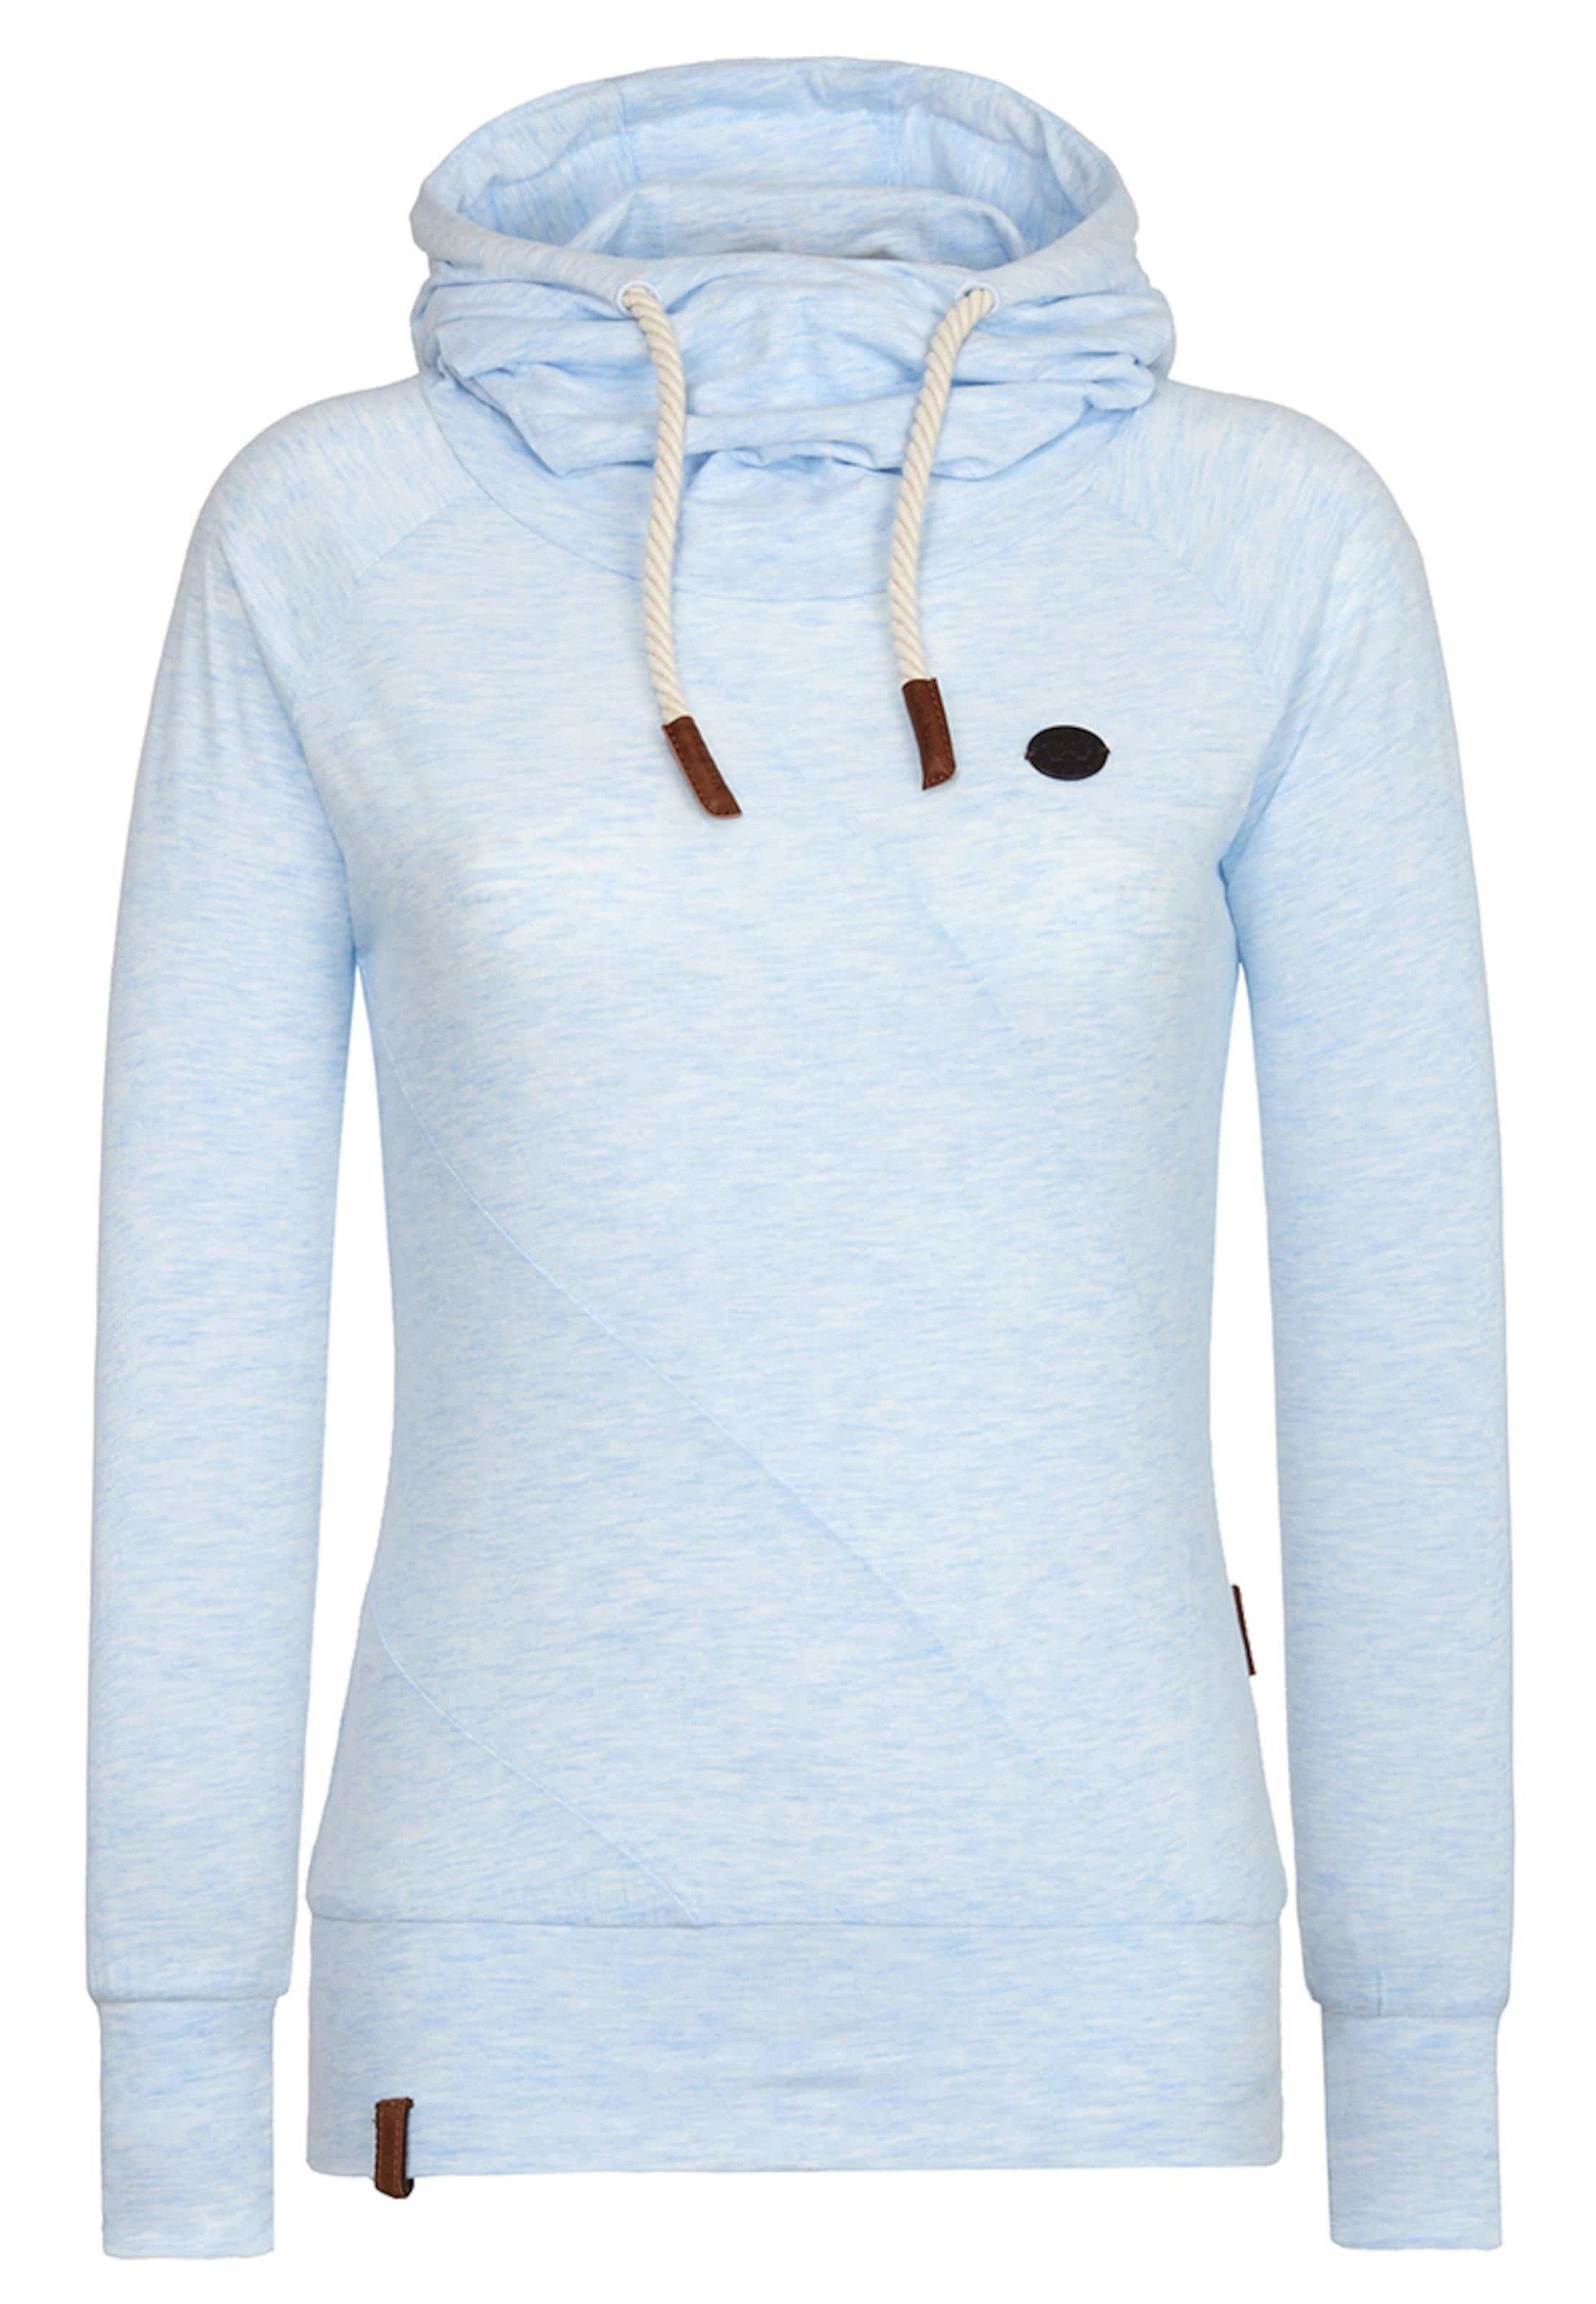 naketano Sweater »Mandy«, 50% Cotton, 50 % Polyester online kaufen | OTTO